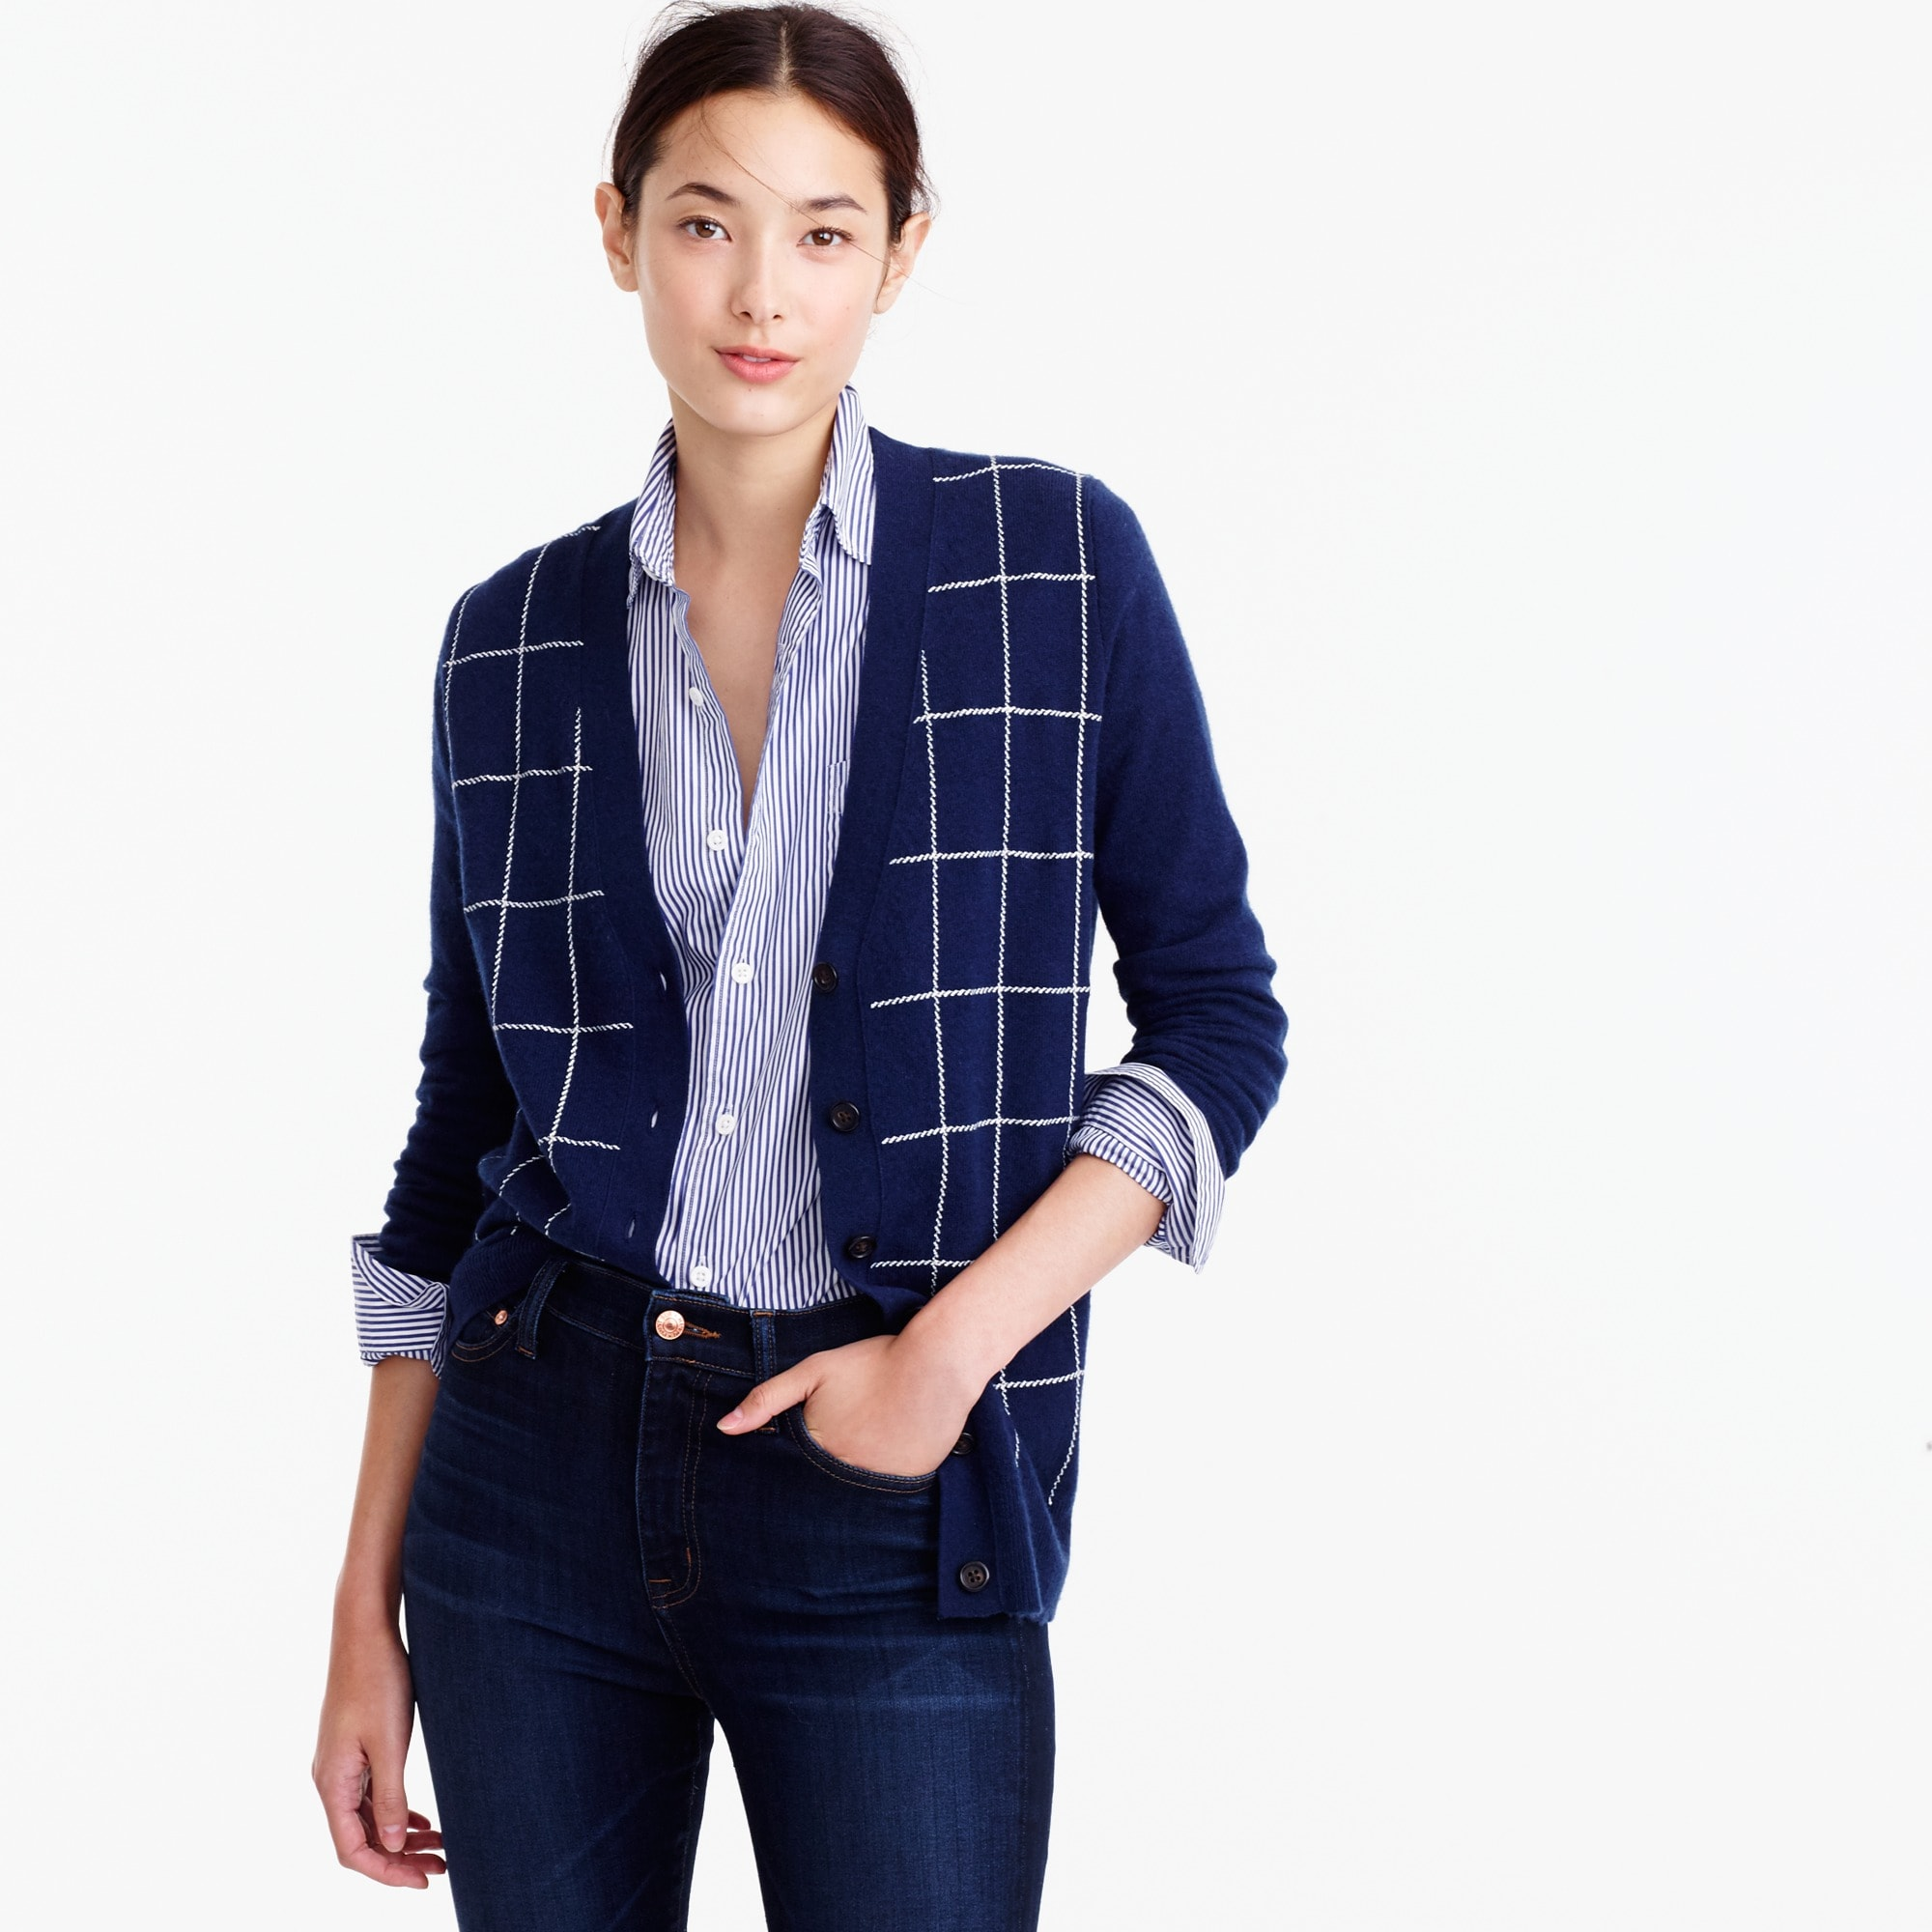 Classic V-neck cardigan sweater in windowpane print